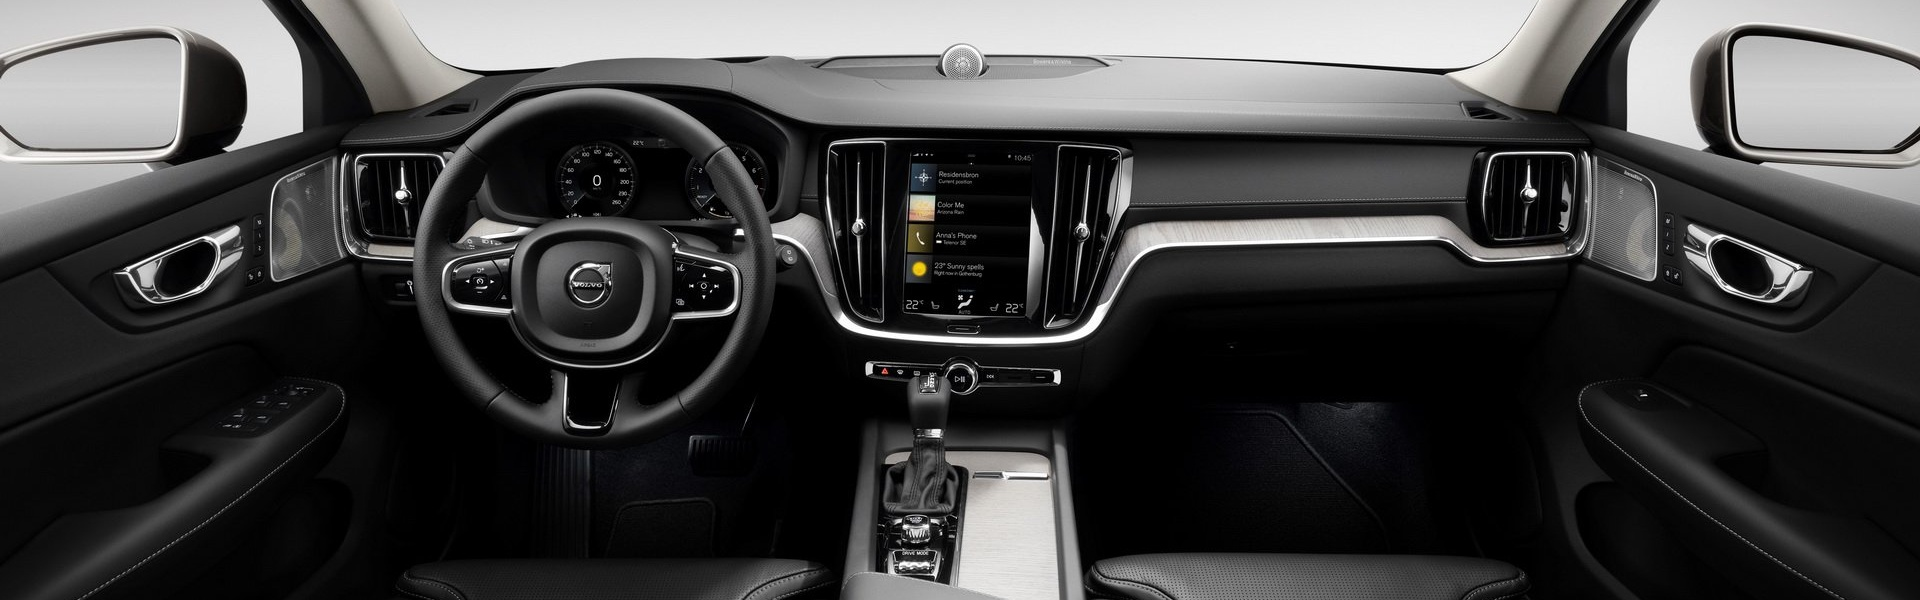 09ab8cc4-volvo-v60-cross-country-all-new-unveiled-24.jpg